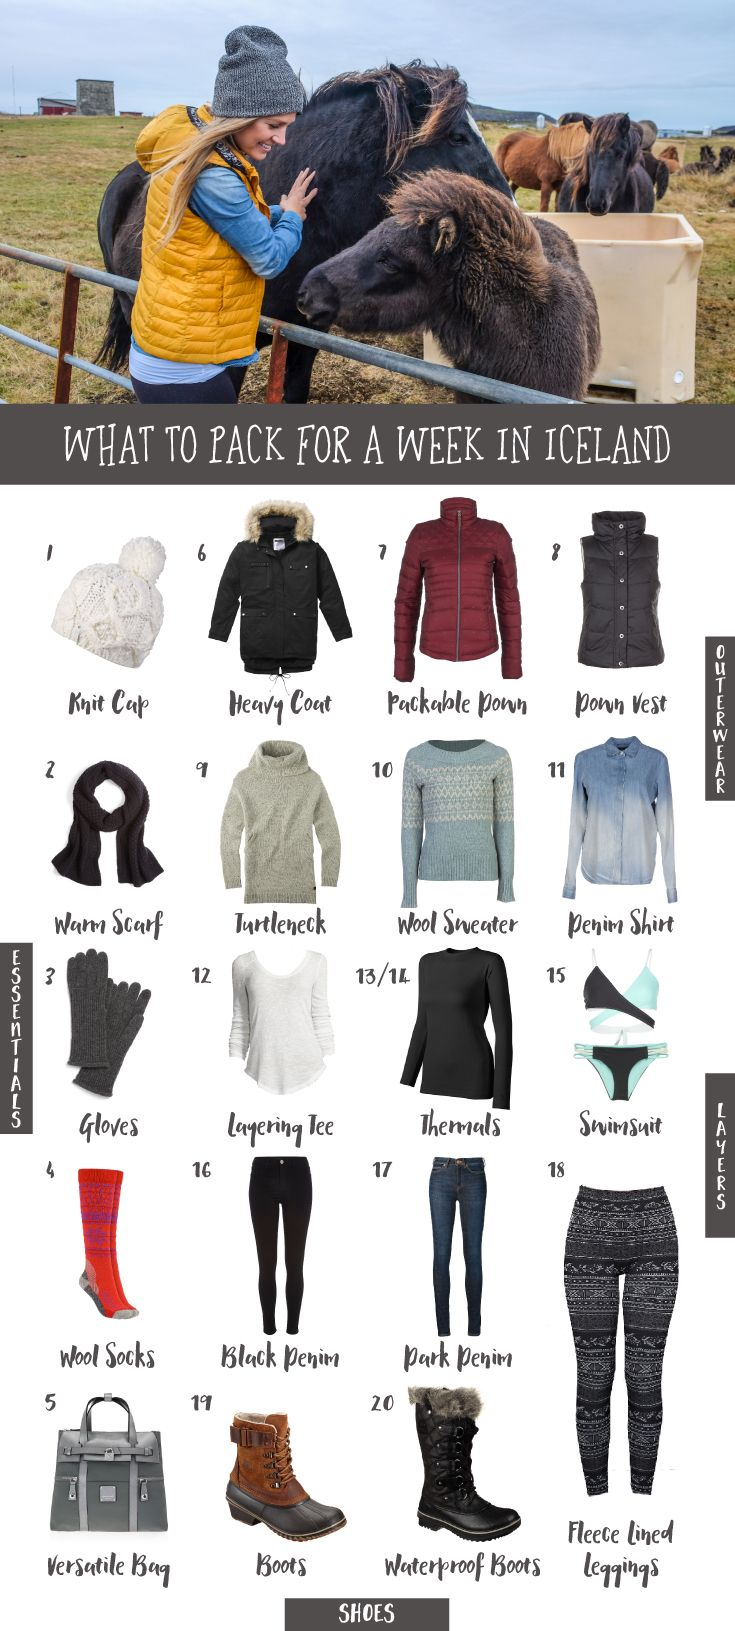 What to Pack for a Week in Iceland | Golden circle ...